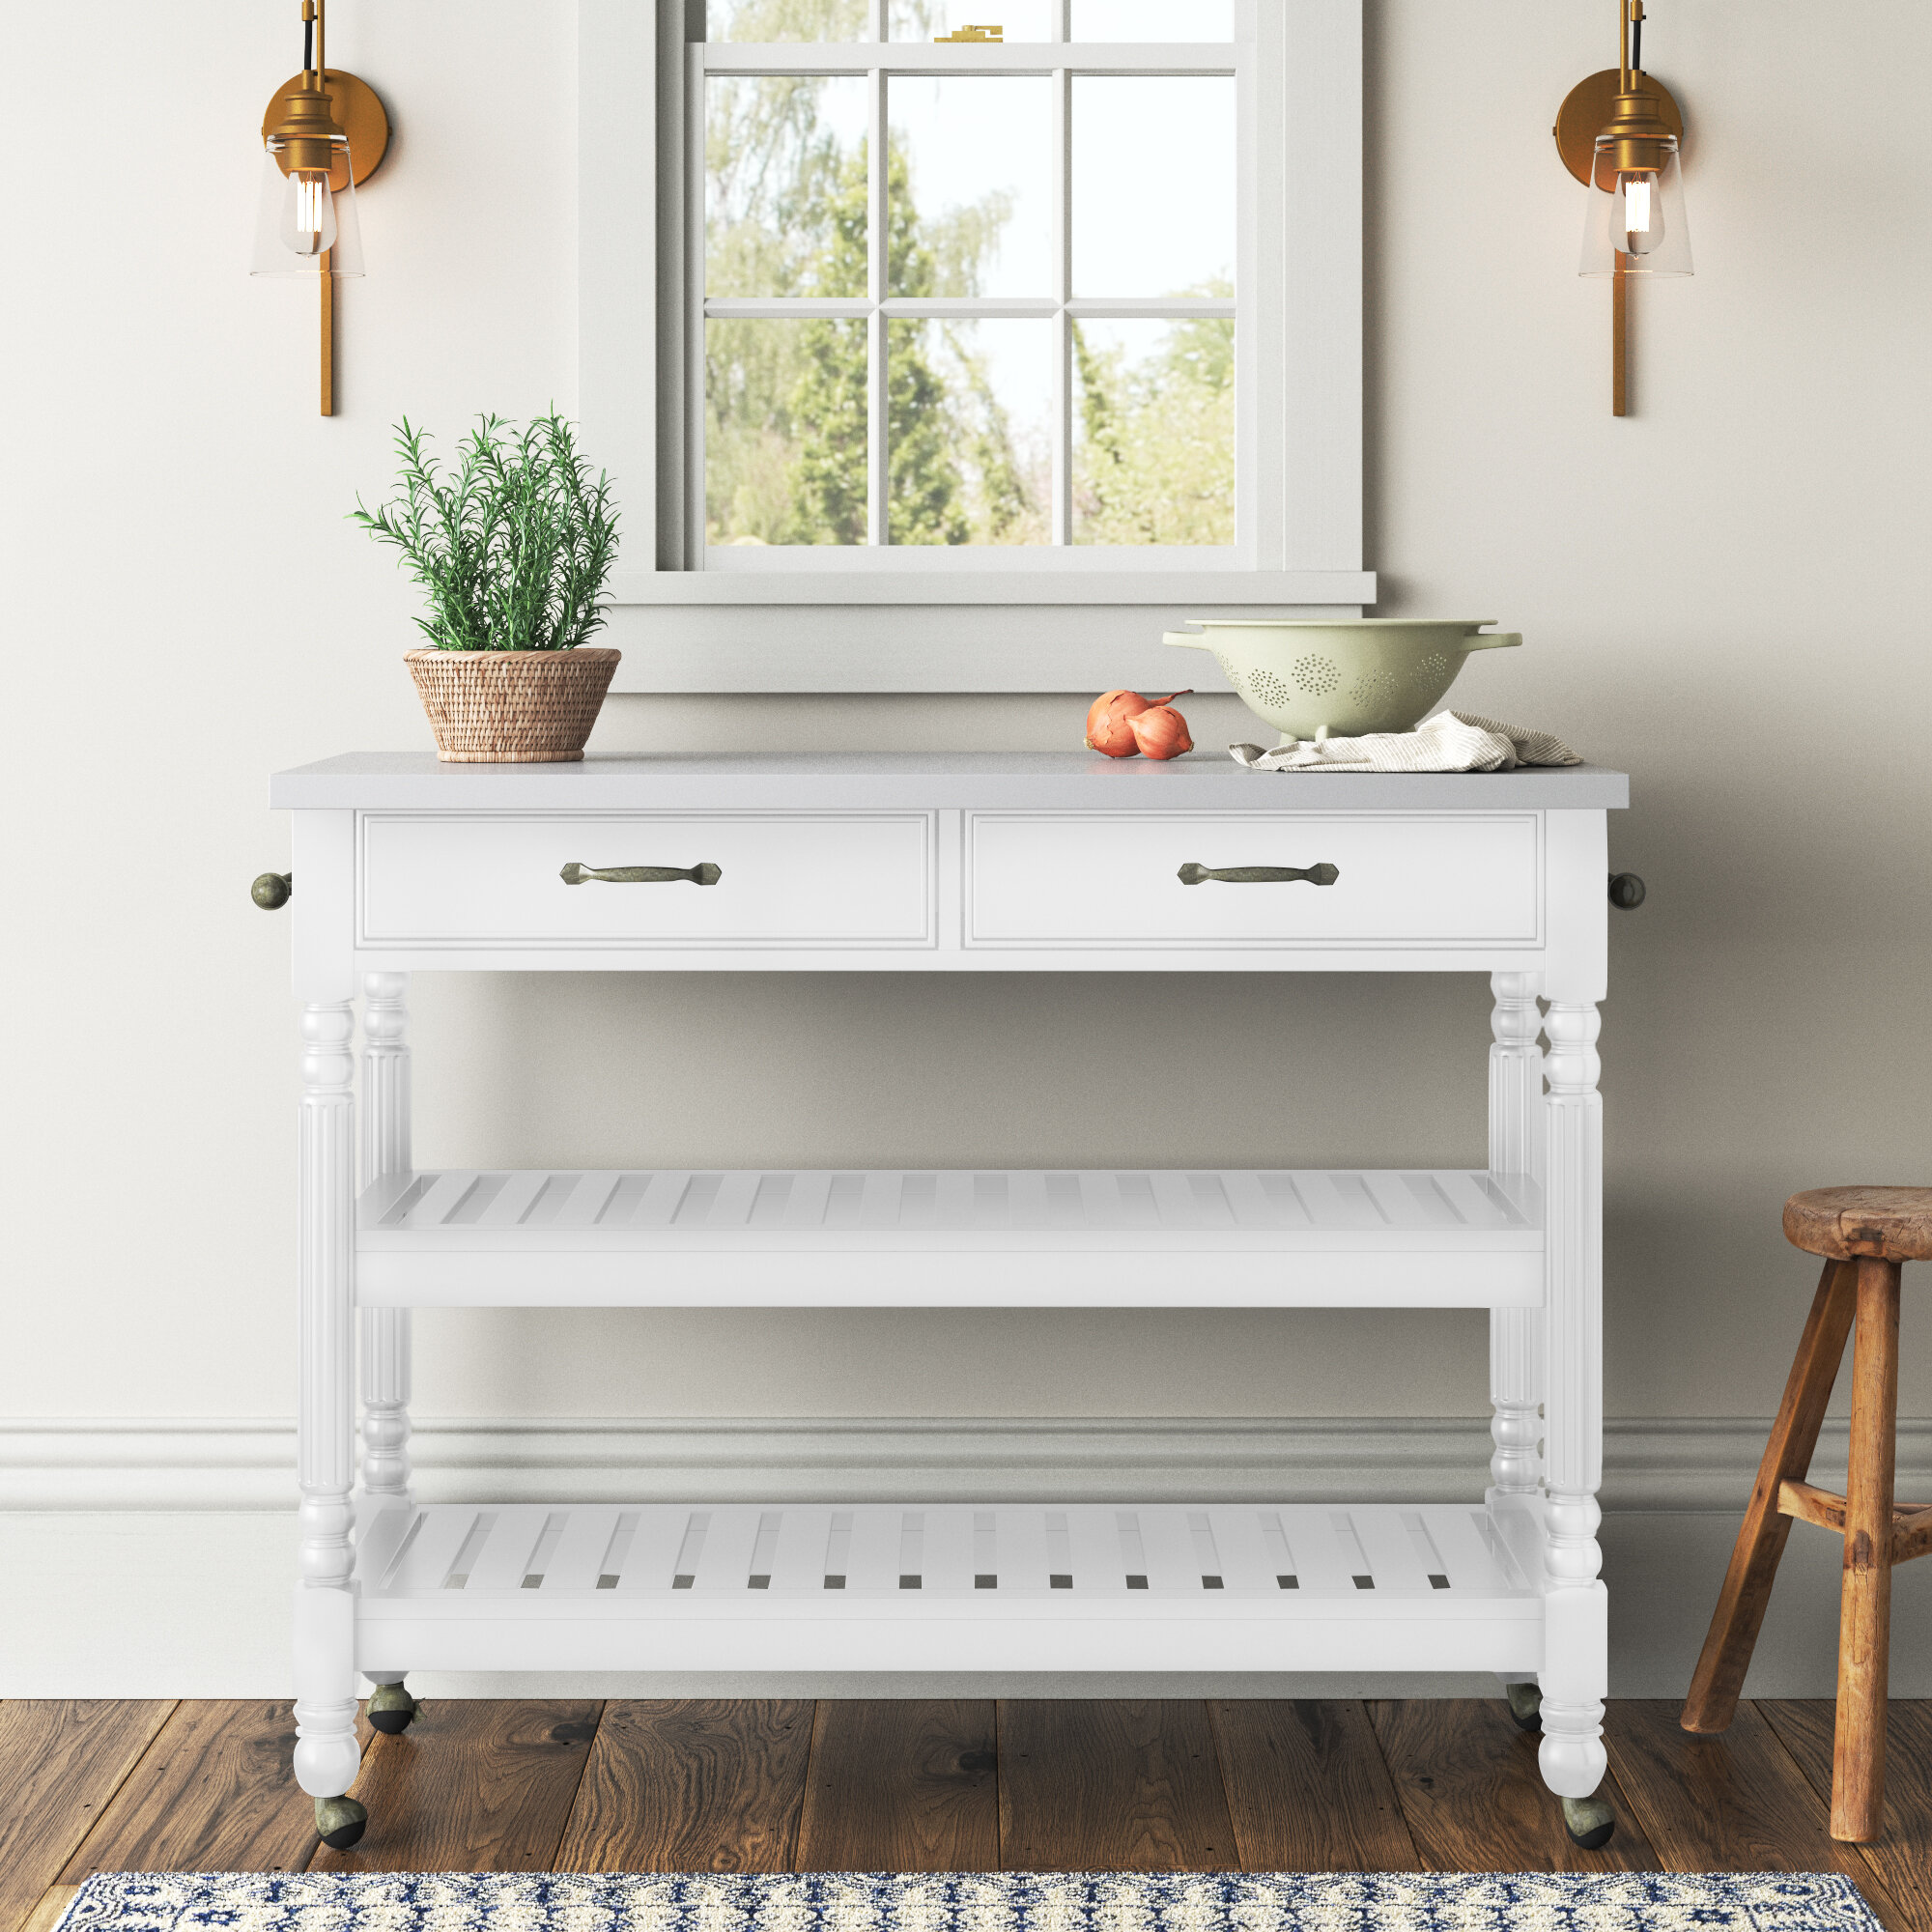 Stainless Steel White Kitchen Islands Carts You Ll Love In 2021 Wayfair